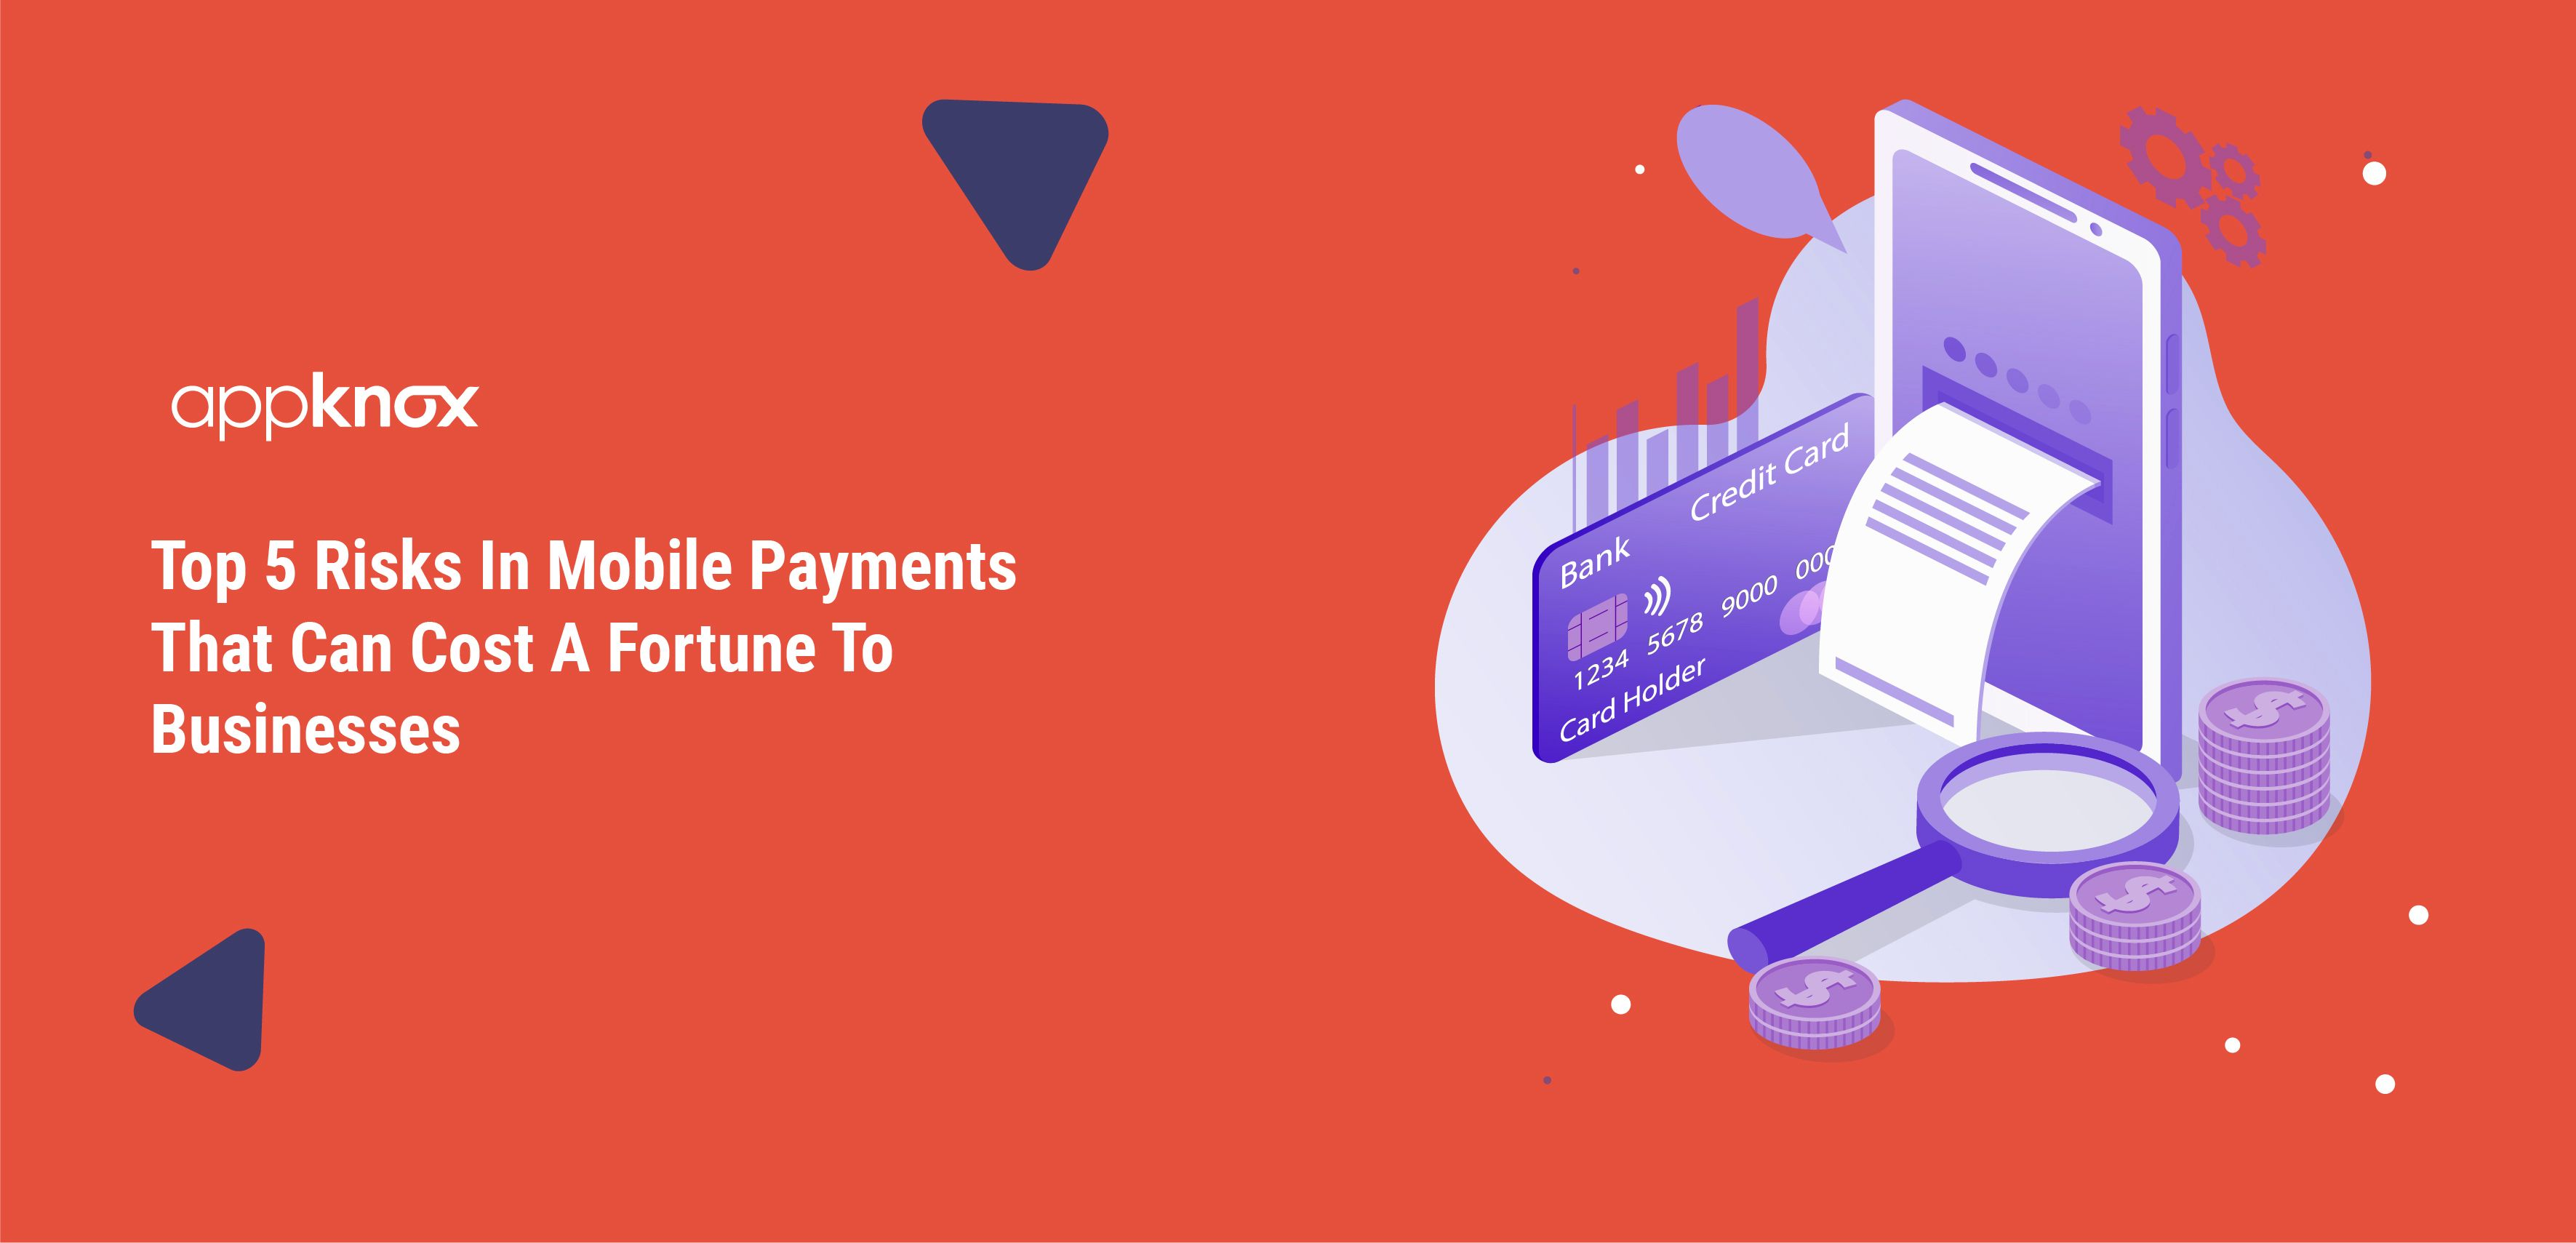 Top 5 Risks In Mobile Payments